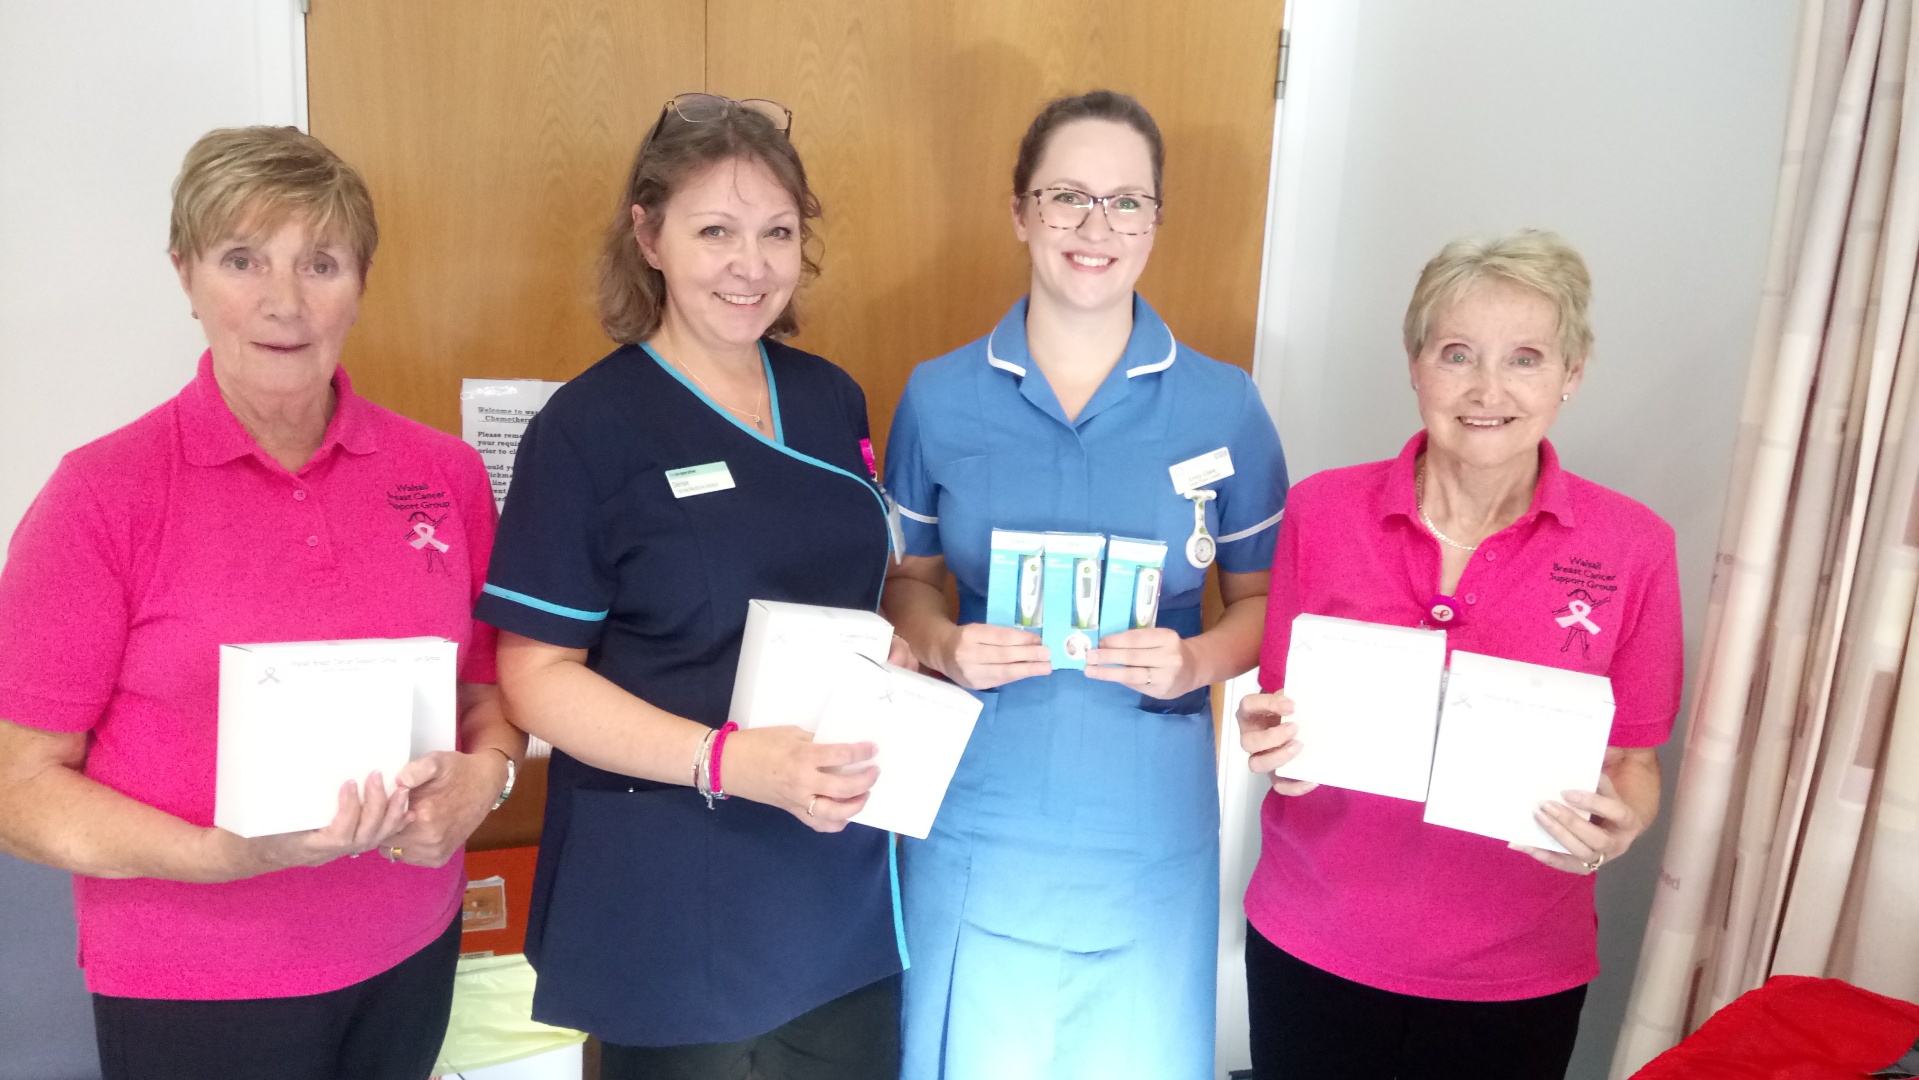 Handing over thermometers to the chemo unit